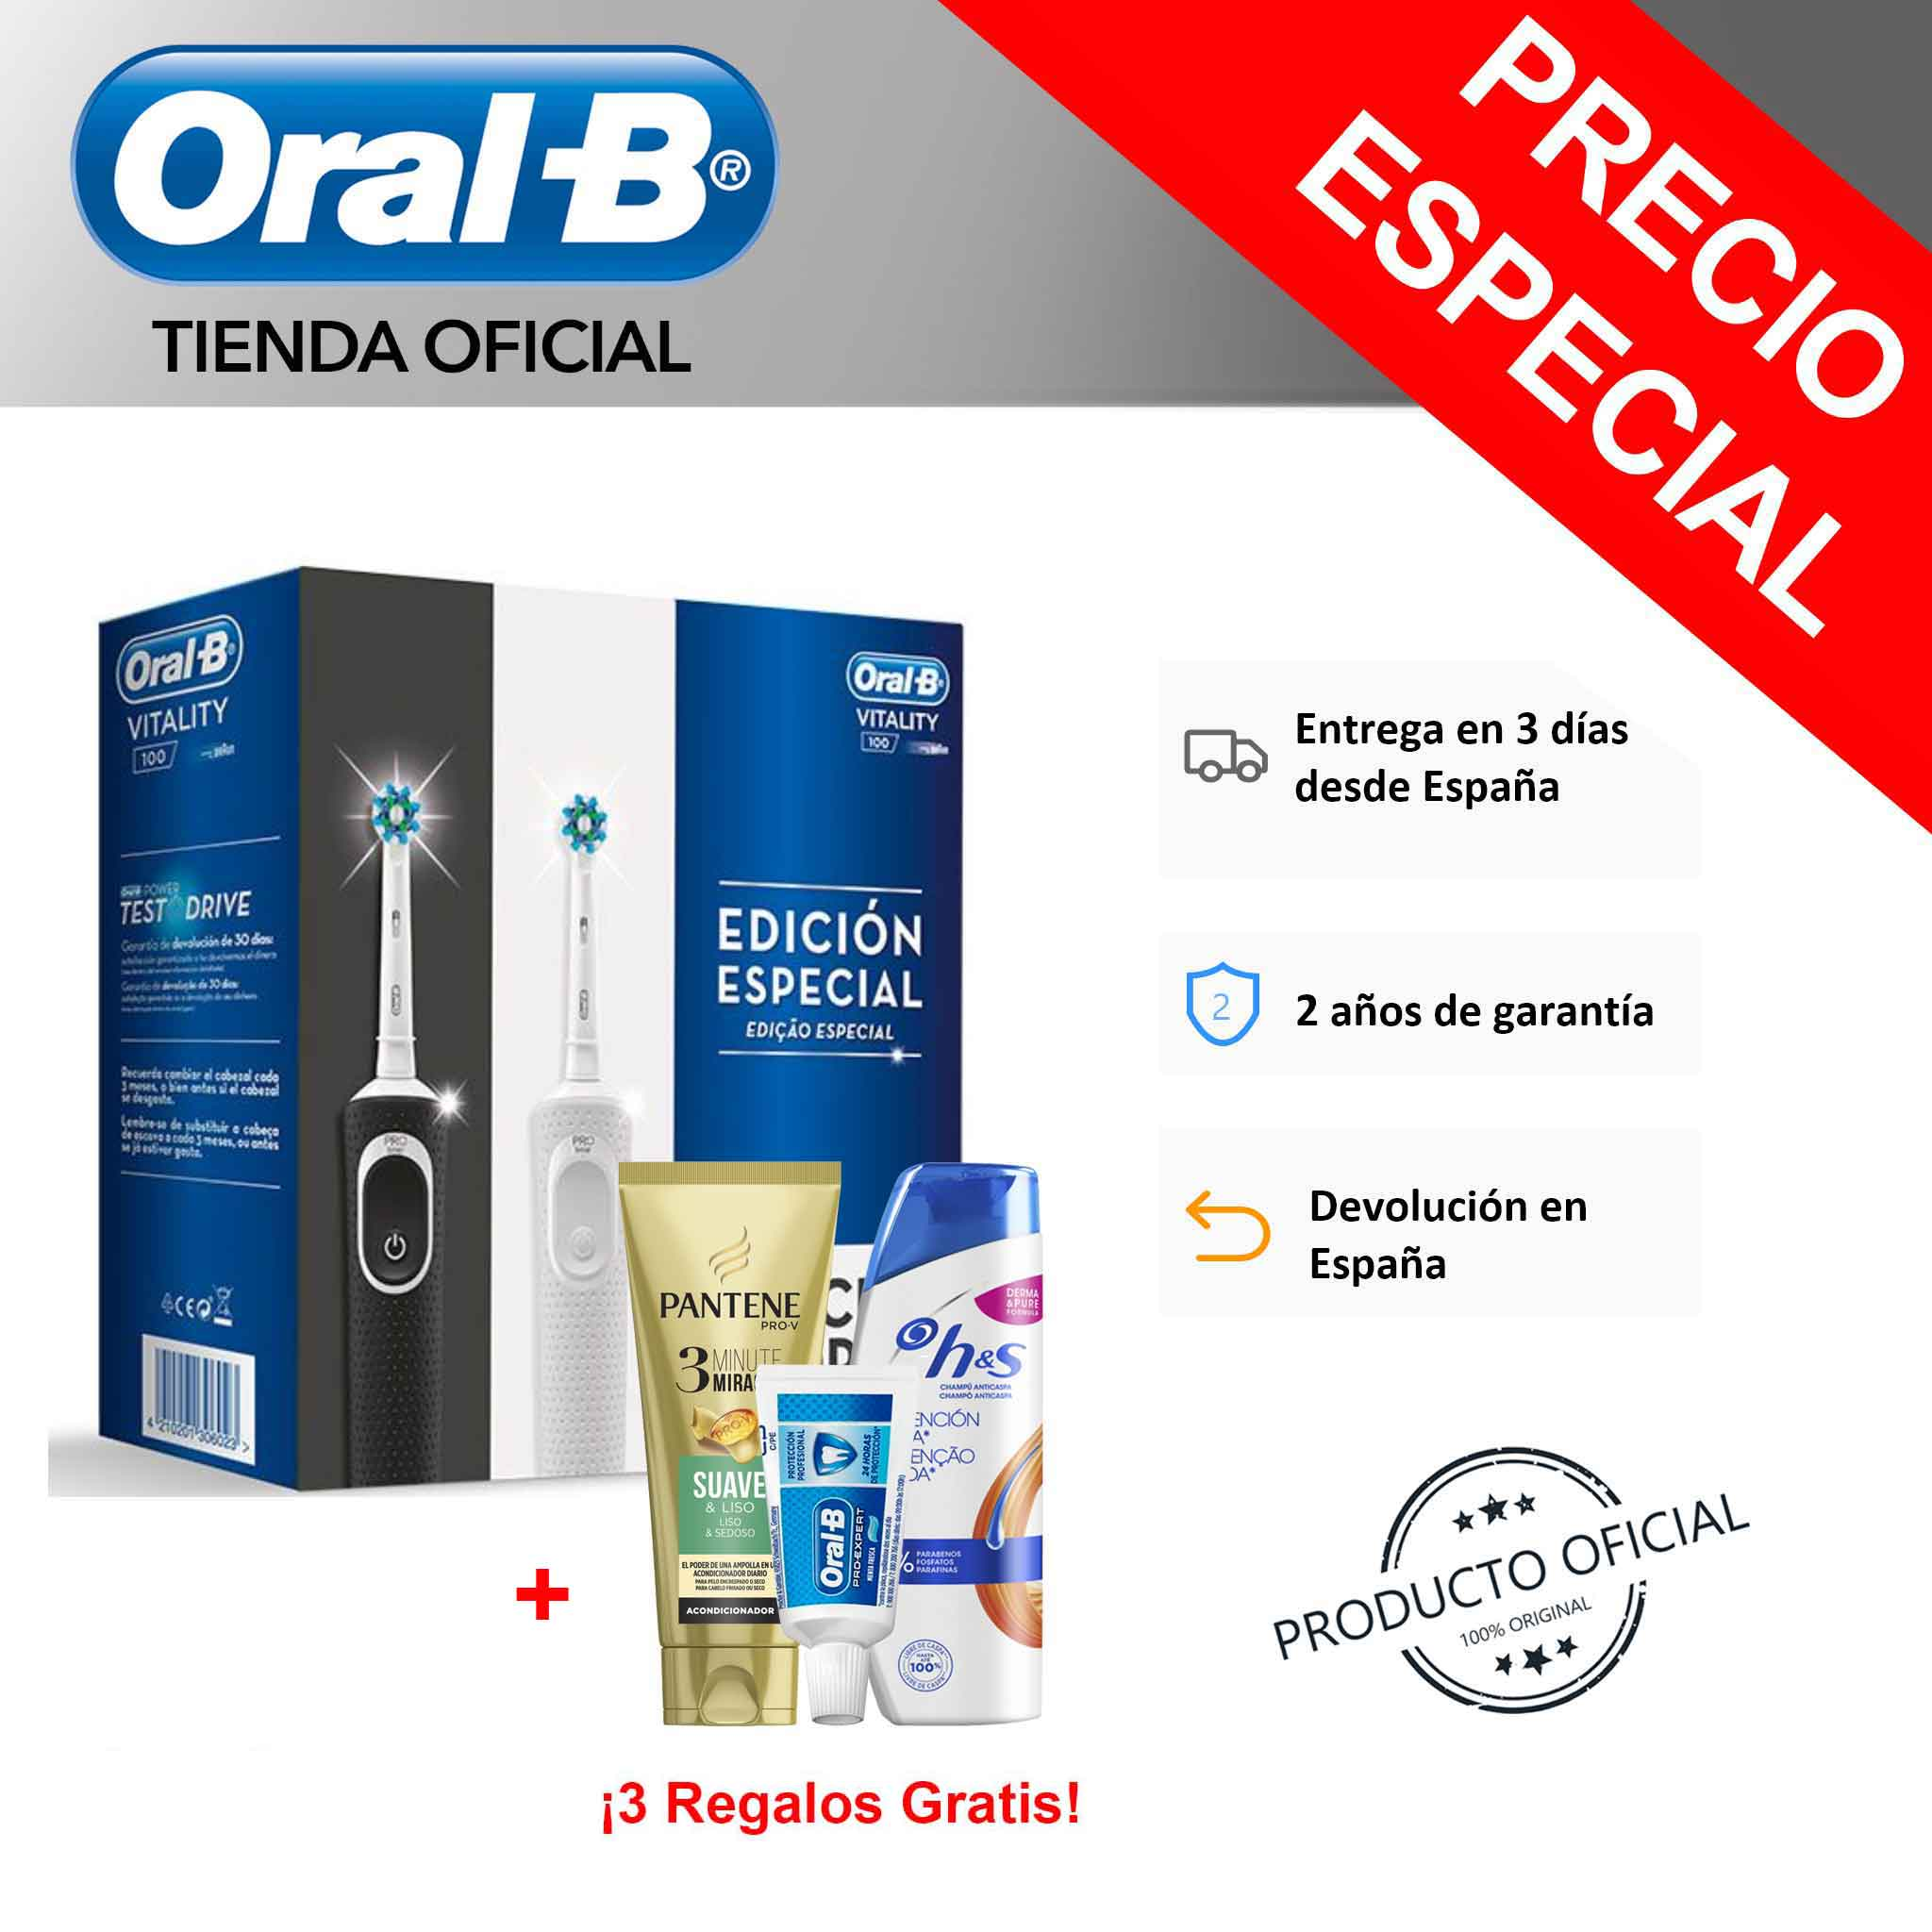 Пакет 2 Cepillos Eléctricos Recargables Oral-B Vitality D100 CrossAction Бланко/Негро + дентифрико Oral-B Pro Expert PP Clean